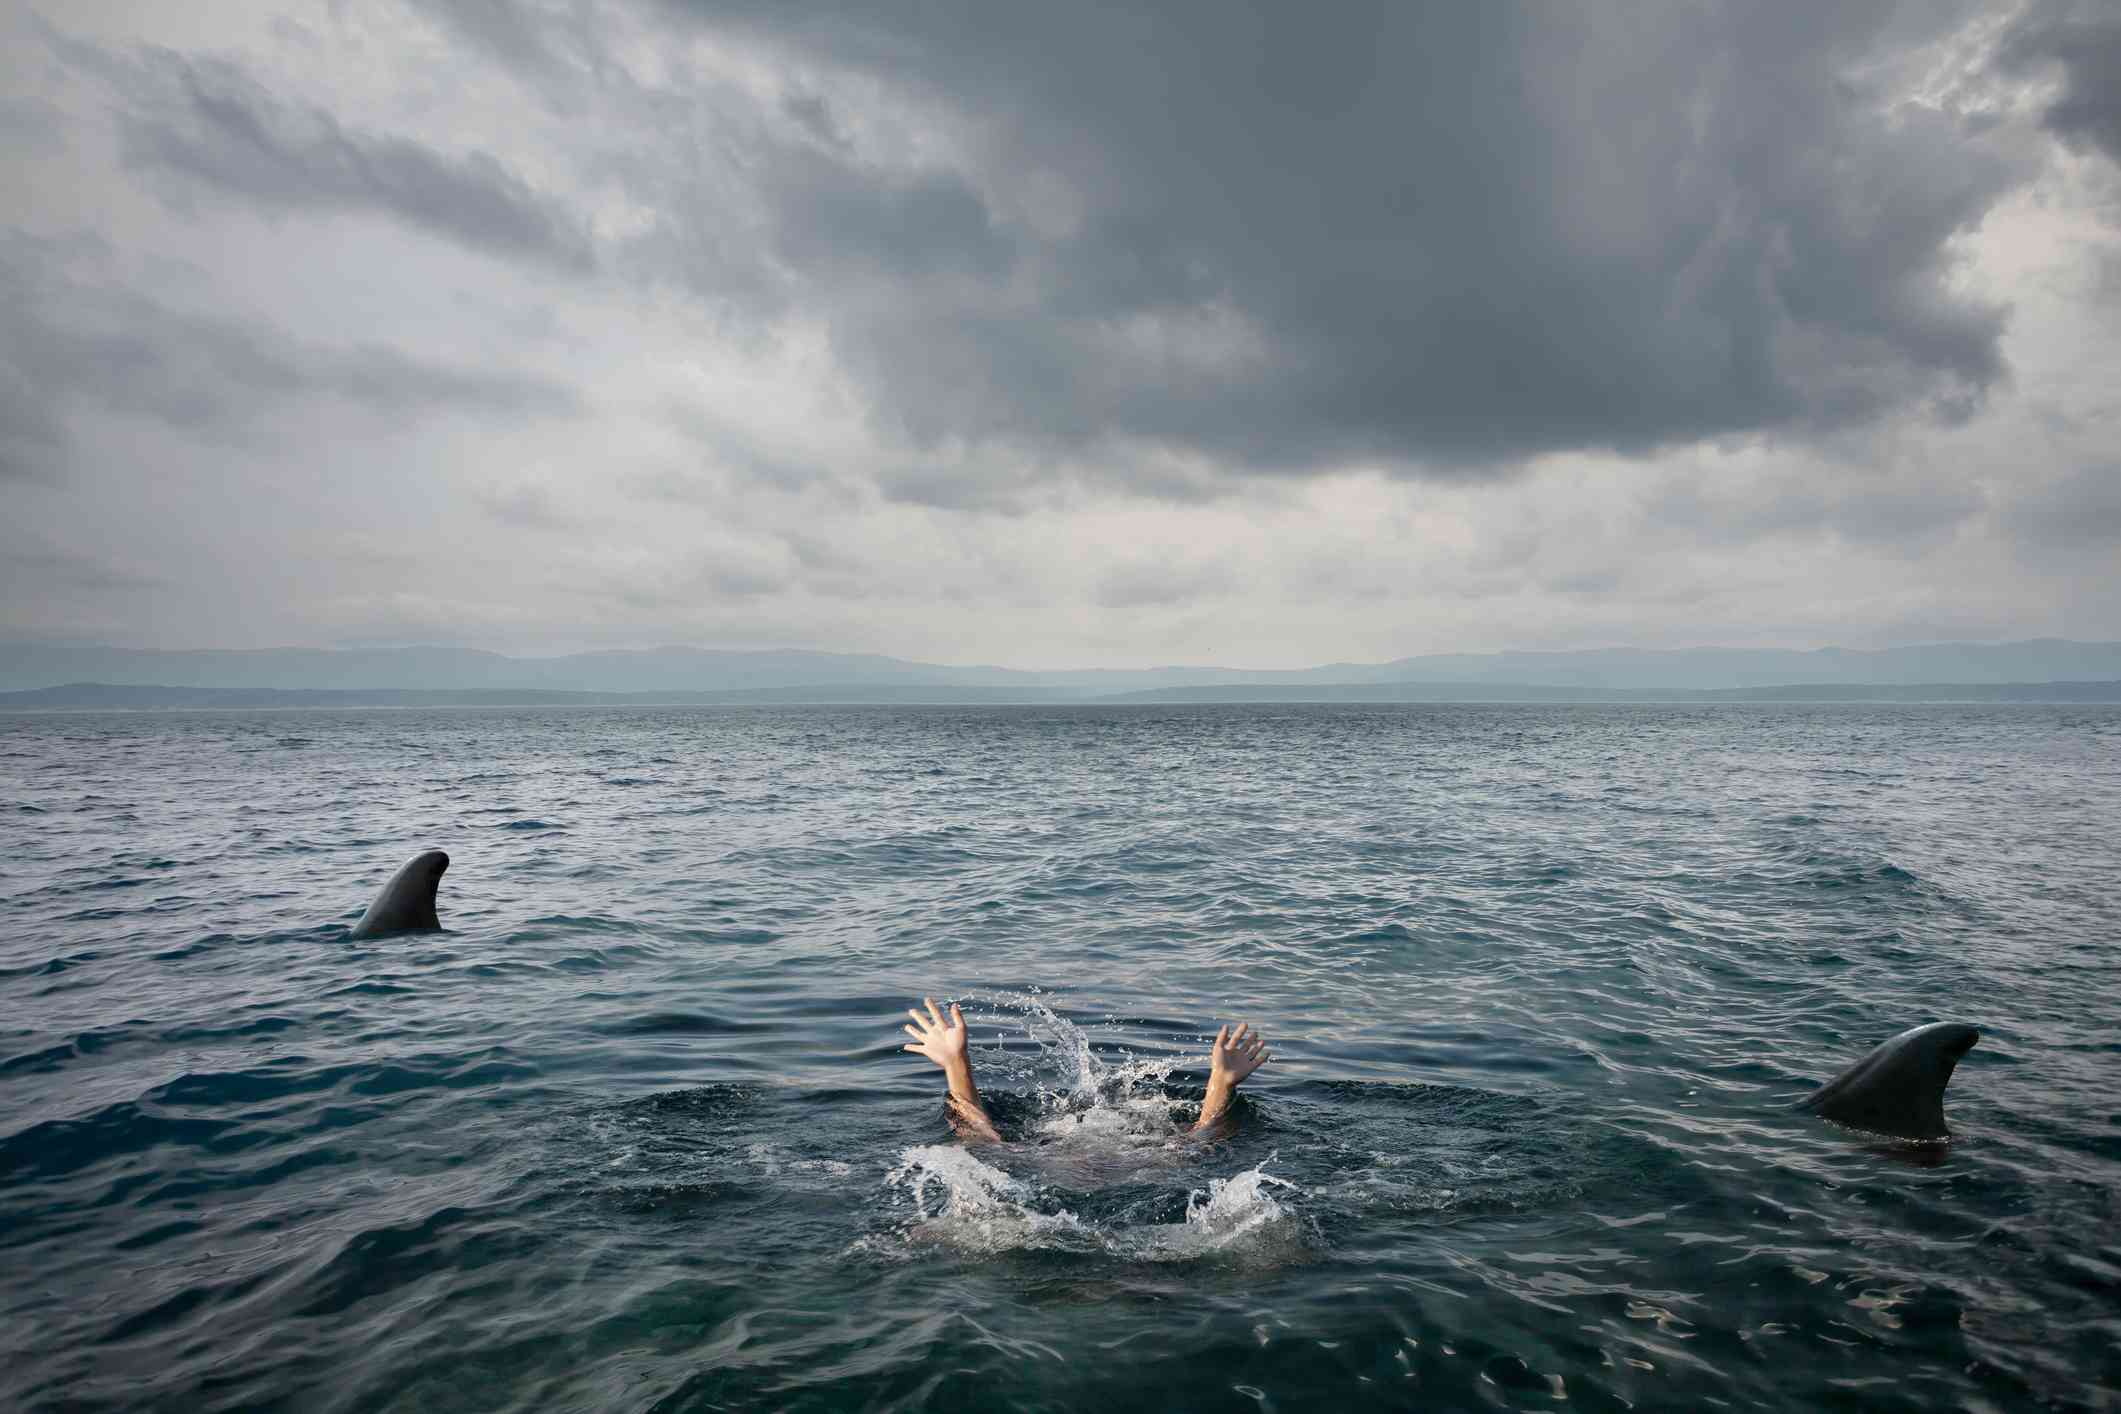 A staged image of someone under the water being attacked by sharks.